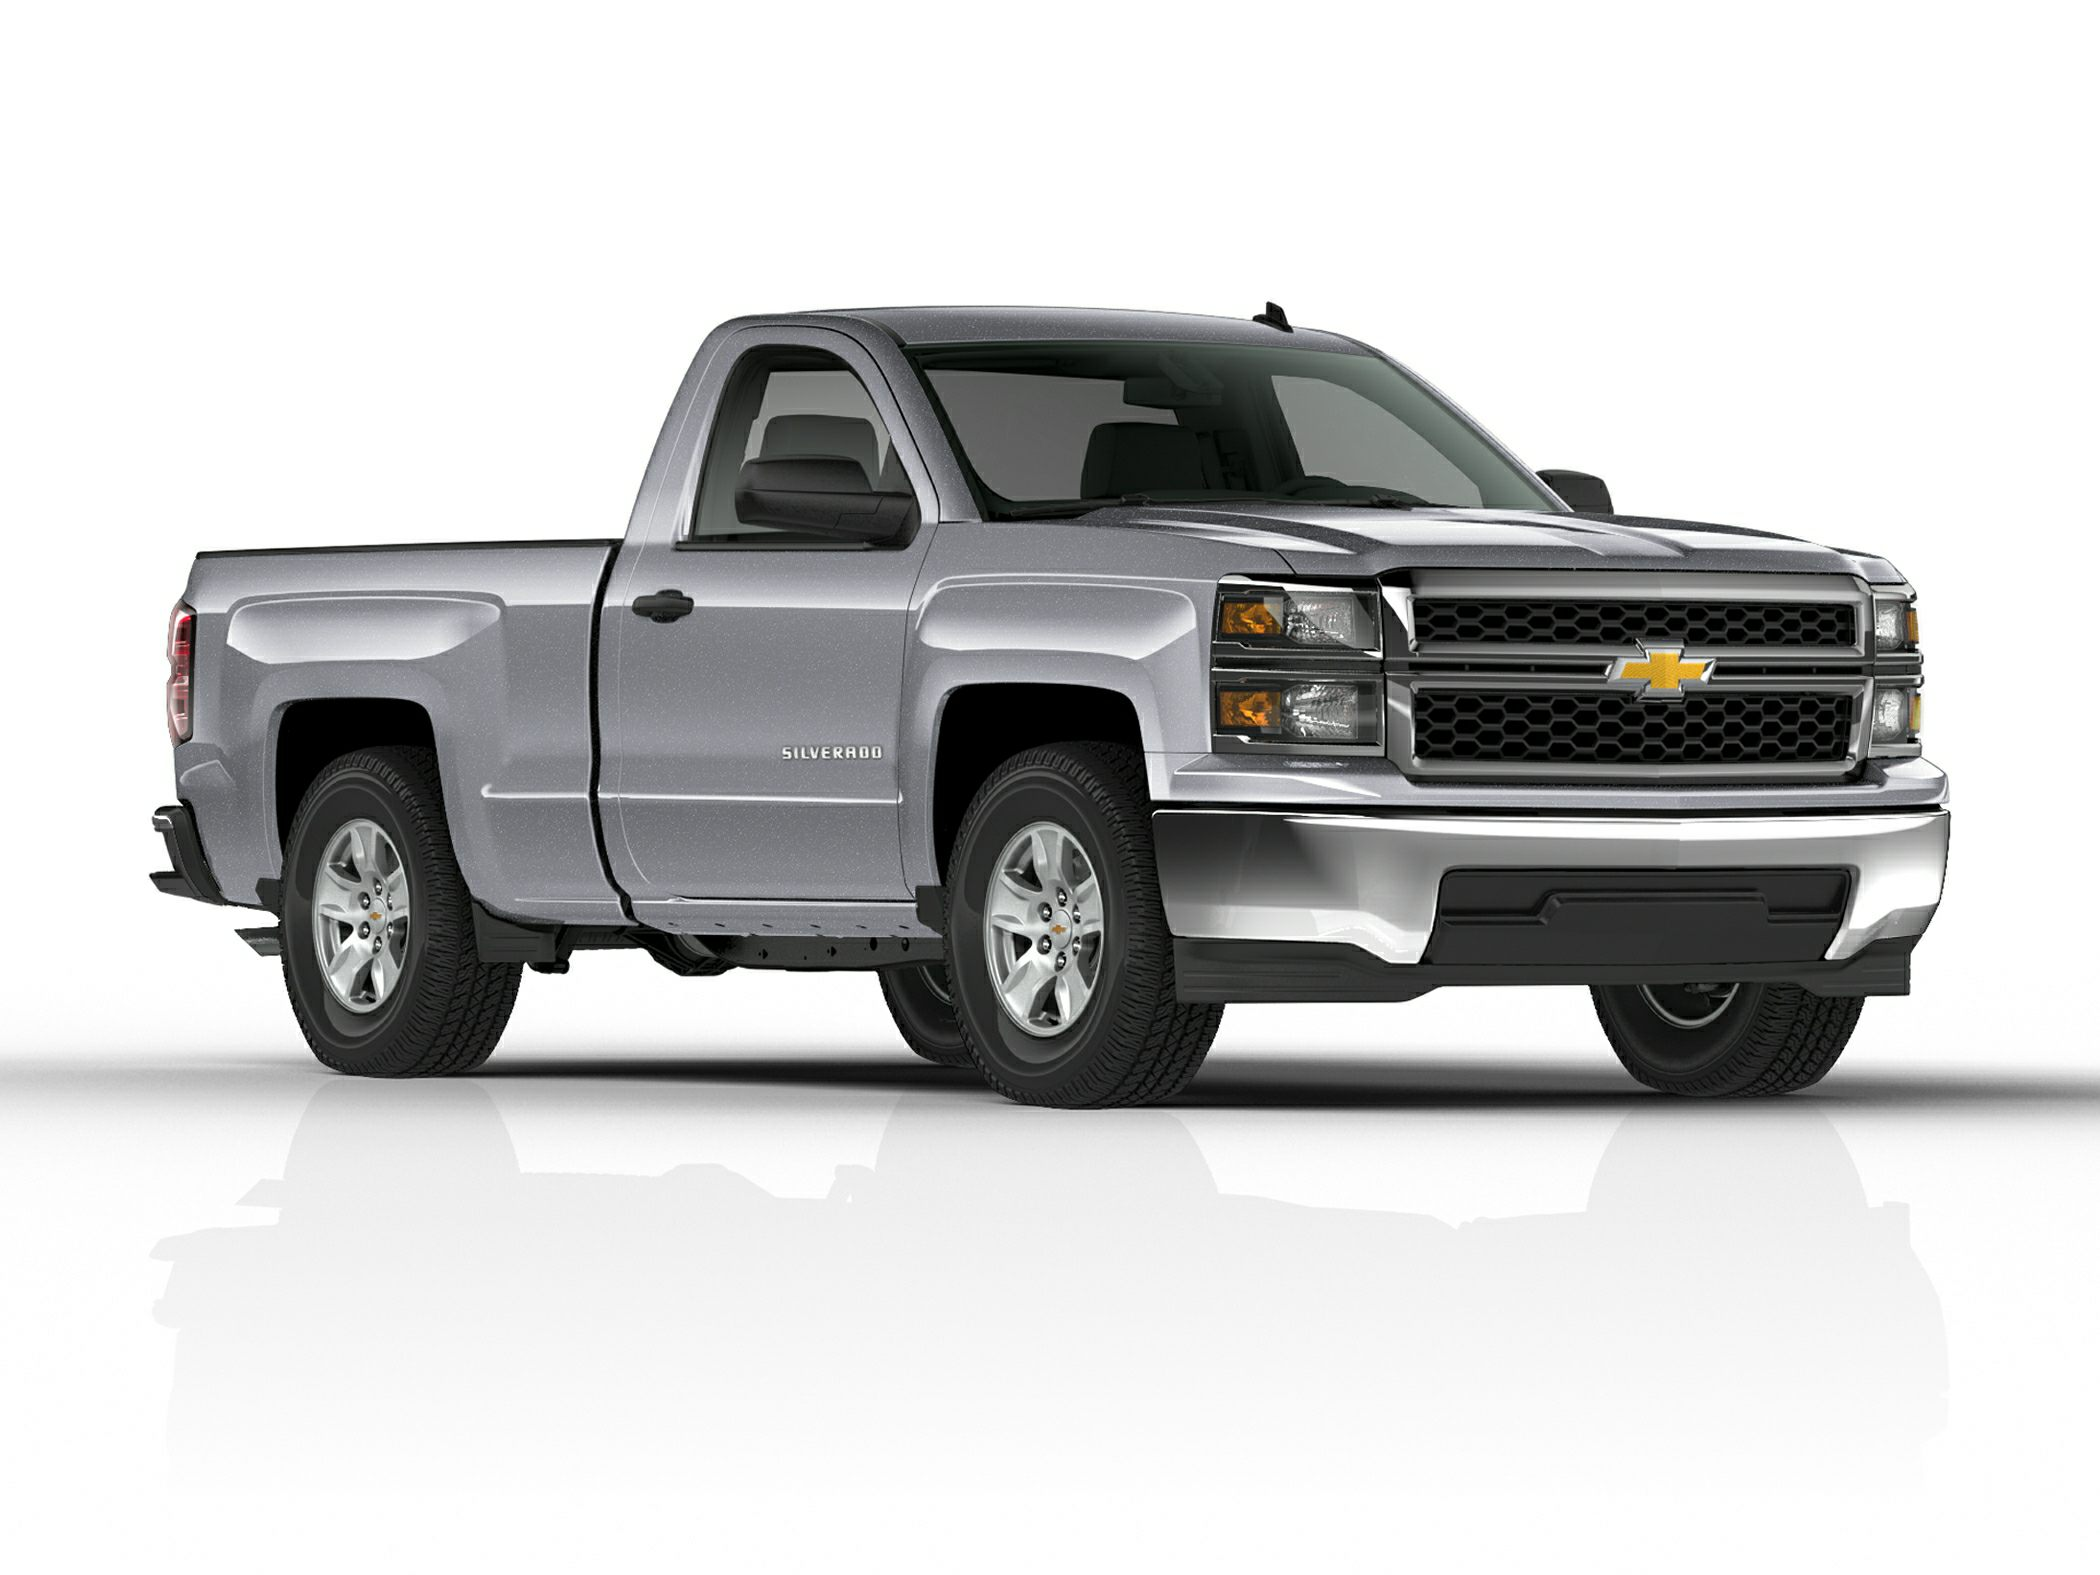 Chevrolet Silverado 1500 Regular Cab 2017 2018